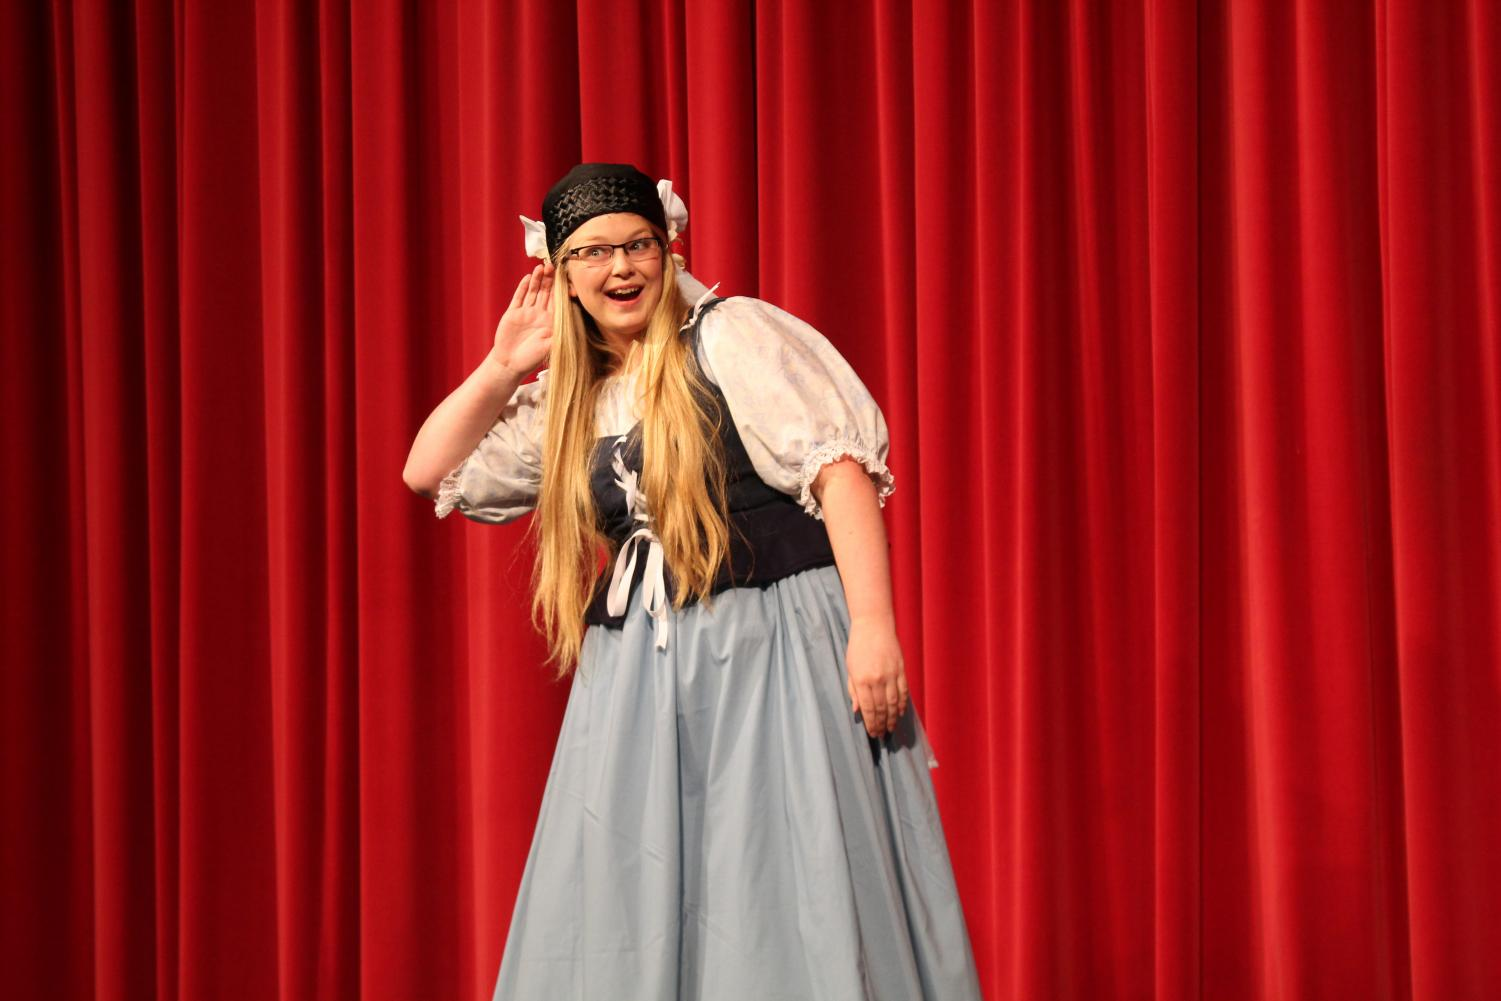 """During last years play, senior Annette Berntsen speaks in between each set as the narrator. """"I thought last year's play was one of the best that we have done, and I'm really excited about what this year's play will bring,'' Berntsen said."""